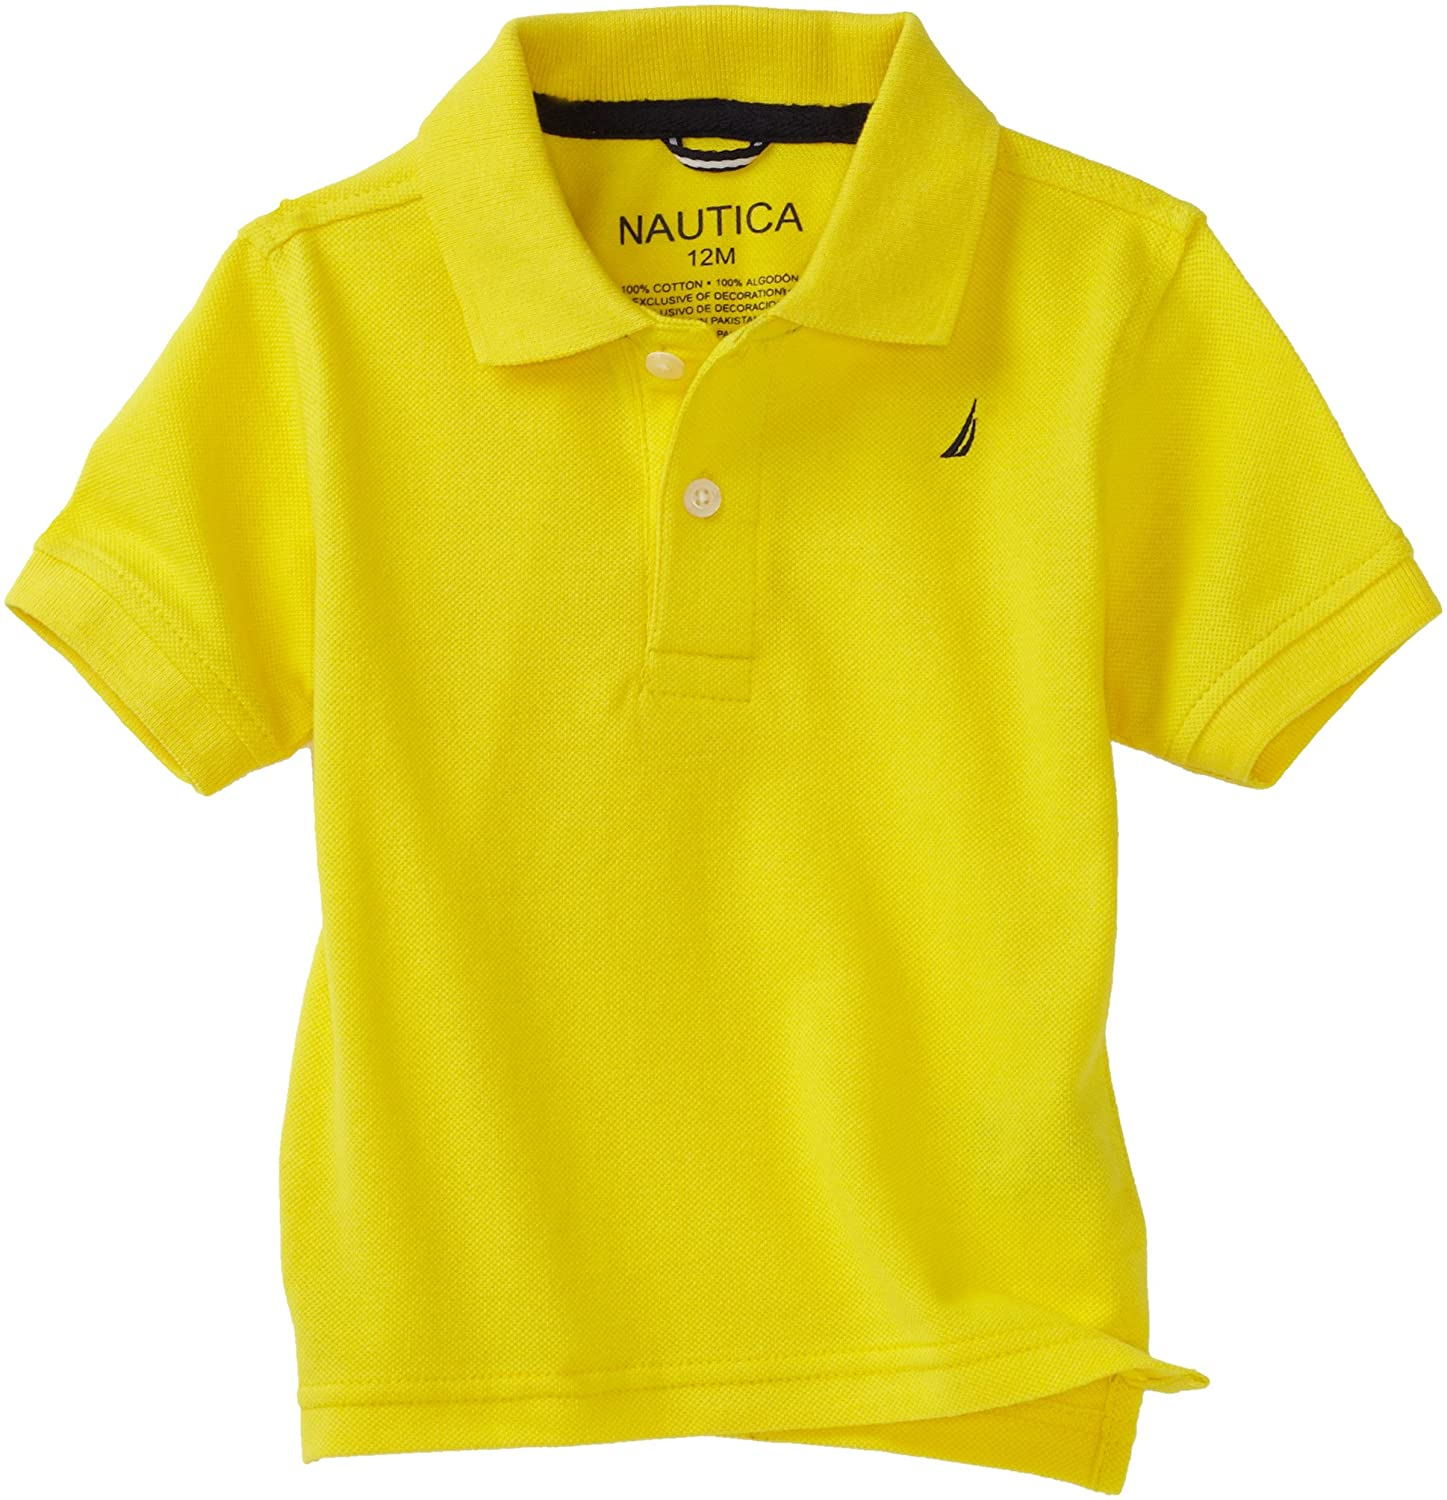 17beafd92 Amazon.com: Nautica Sportswear Kids Baby Boys' Short Sleeve Solid Polo Shirt,  Yellow, 24 Months: Infant And Toddler Polo Shirts: Clothing